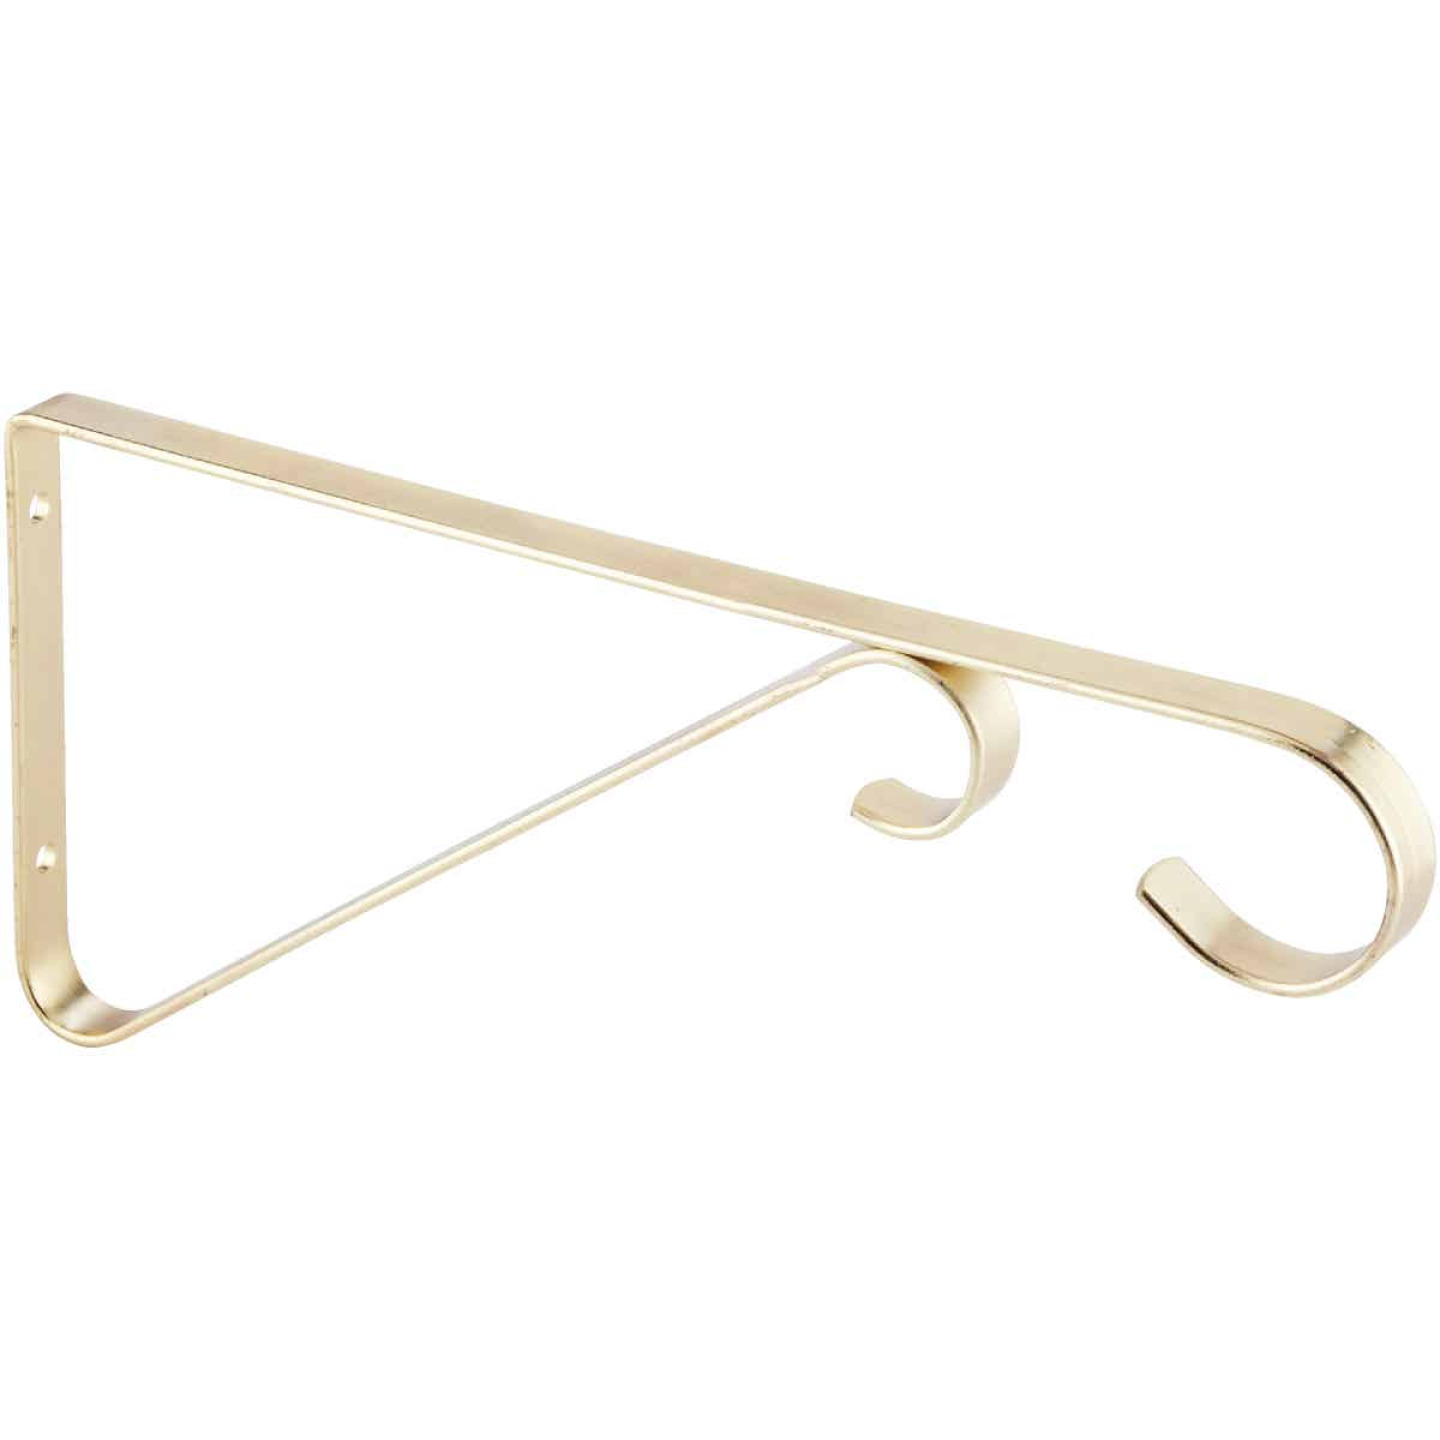 National 6 In. Brass Steel Hanging Plant Bracket Image 4